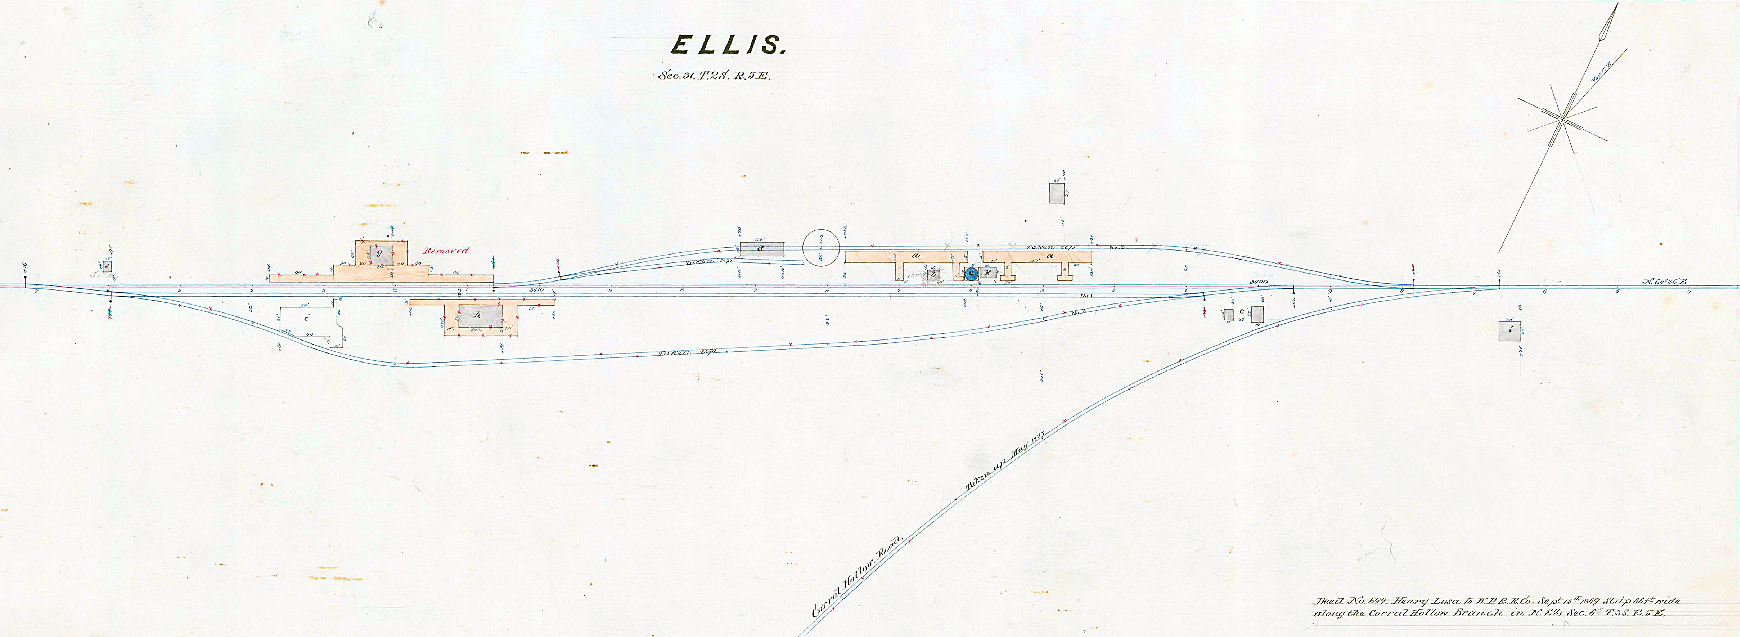 Ellis, California (Plat Map Detail, Circa 1875)